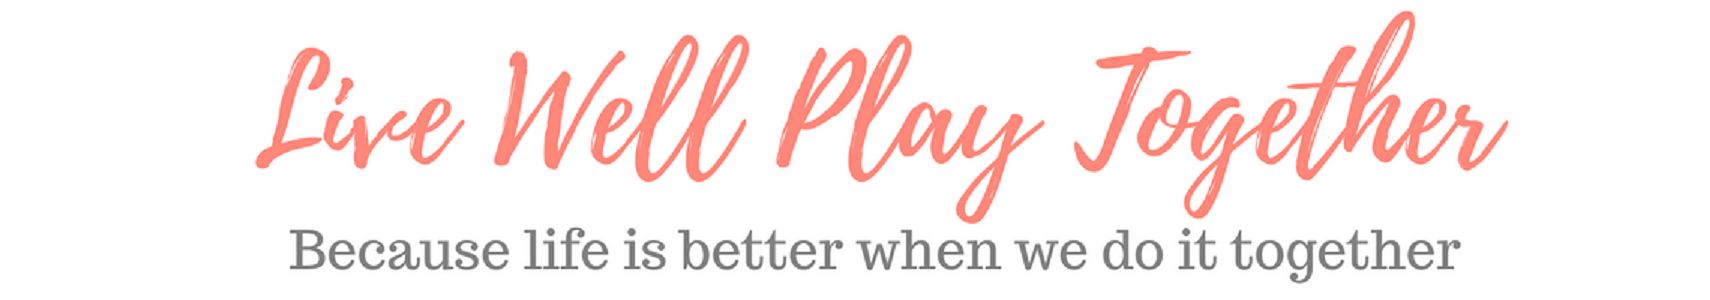 Live Well Play Together